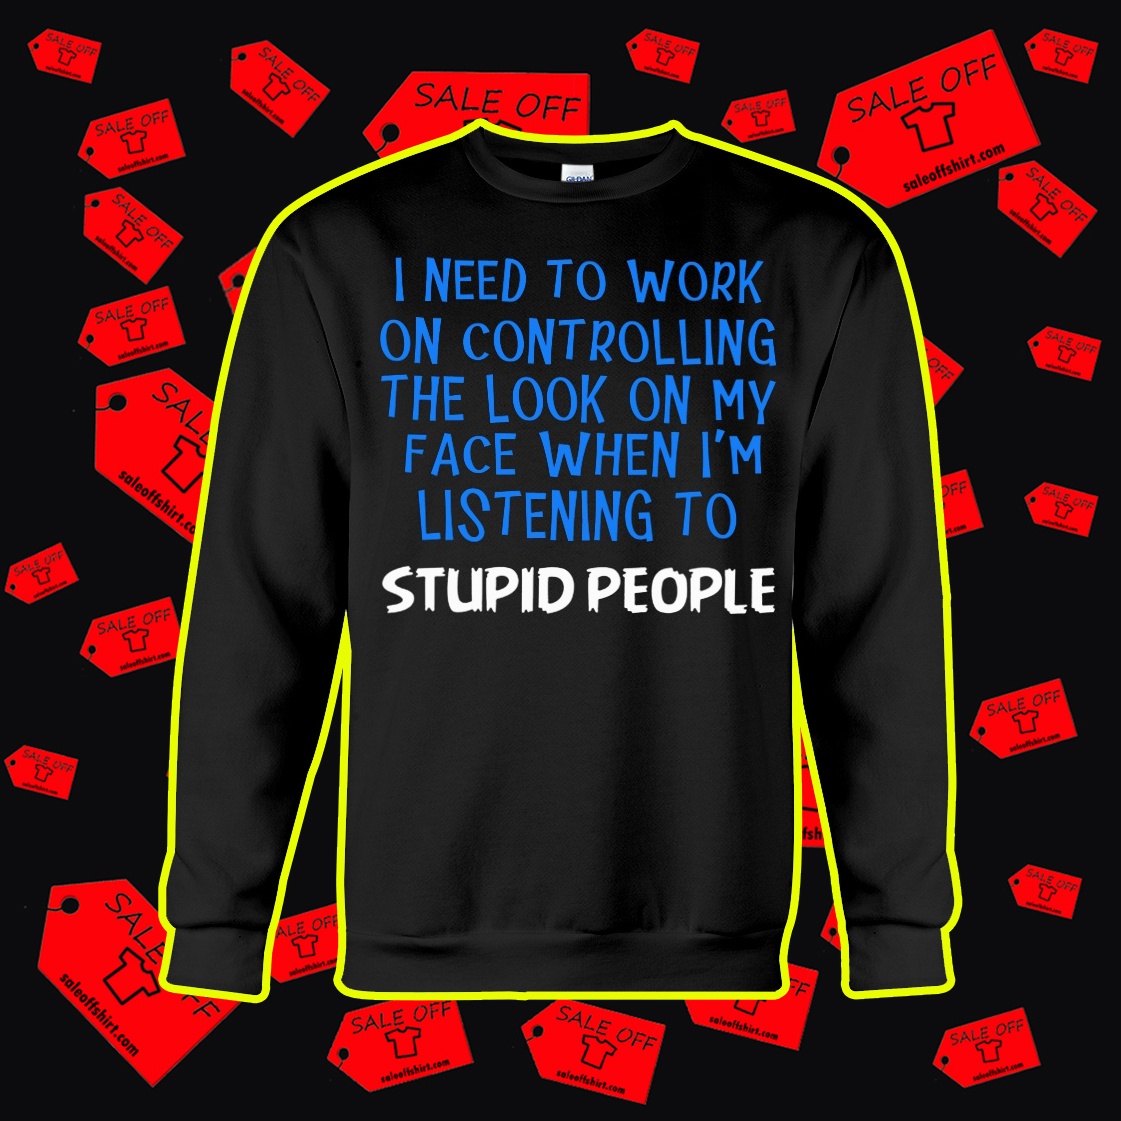 I Need To Work On Controlling The Look On My Face When I'm Listening To Stupid People crewneck sweatshirt